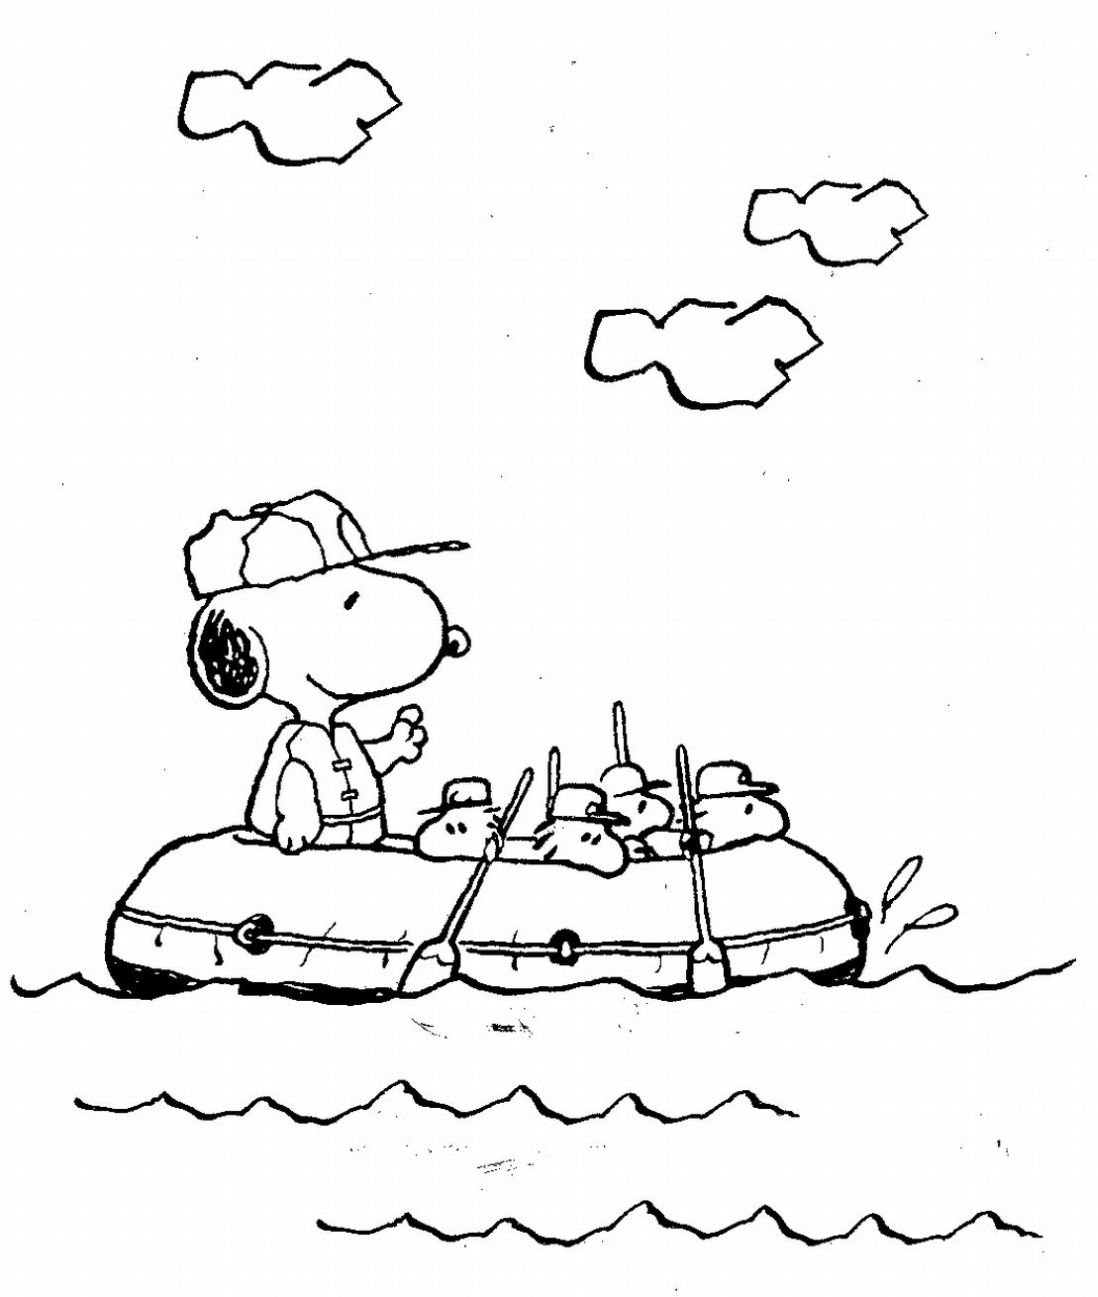 1098x1297 Snoopy Coloring Page Coloring Pages For Kids